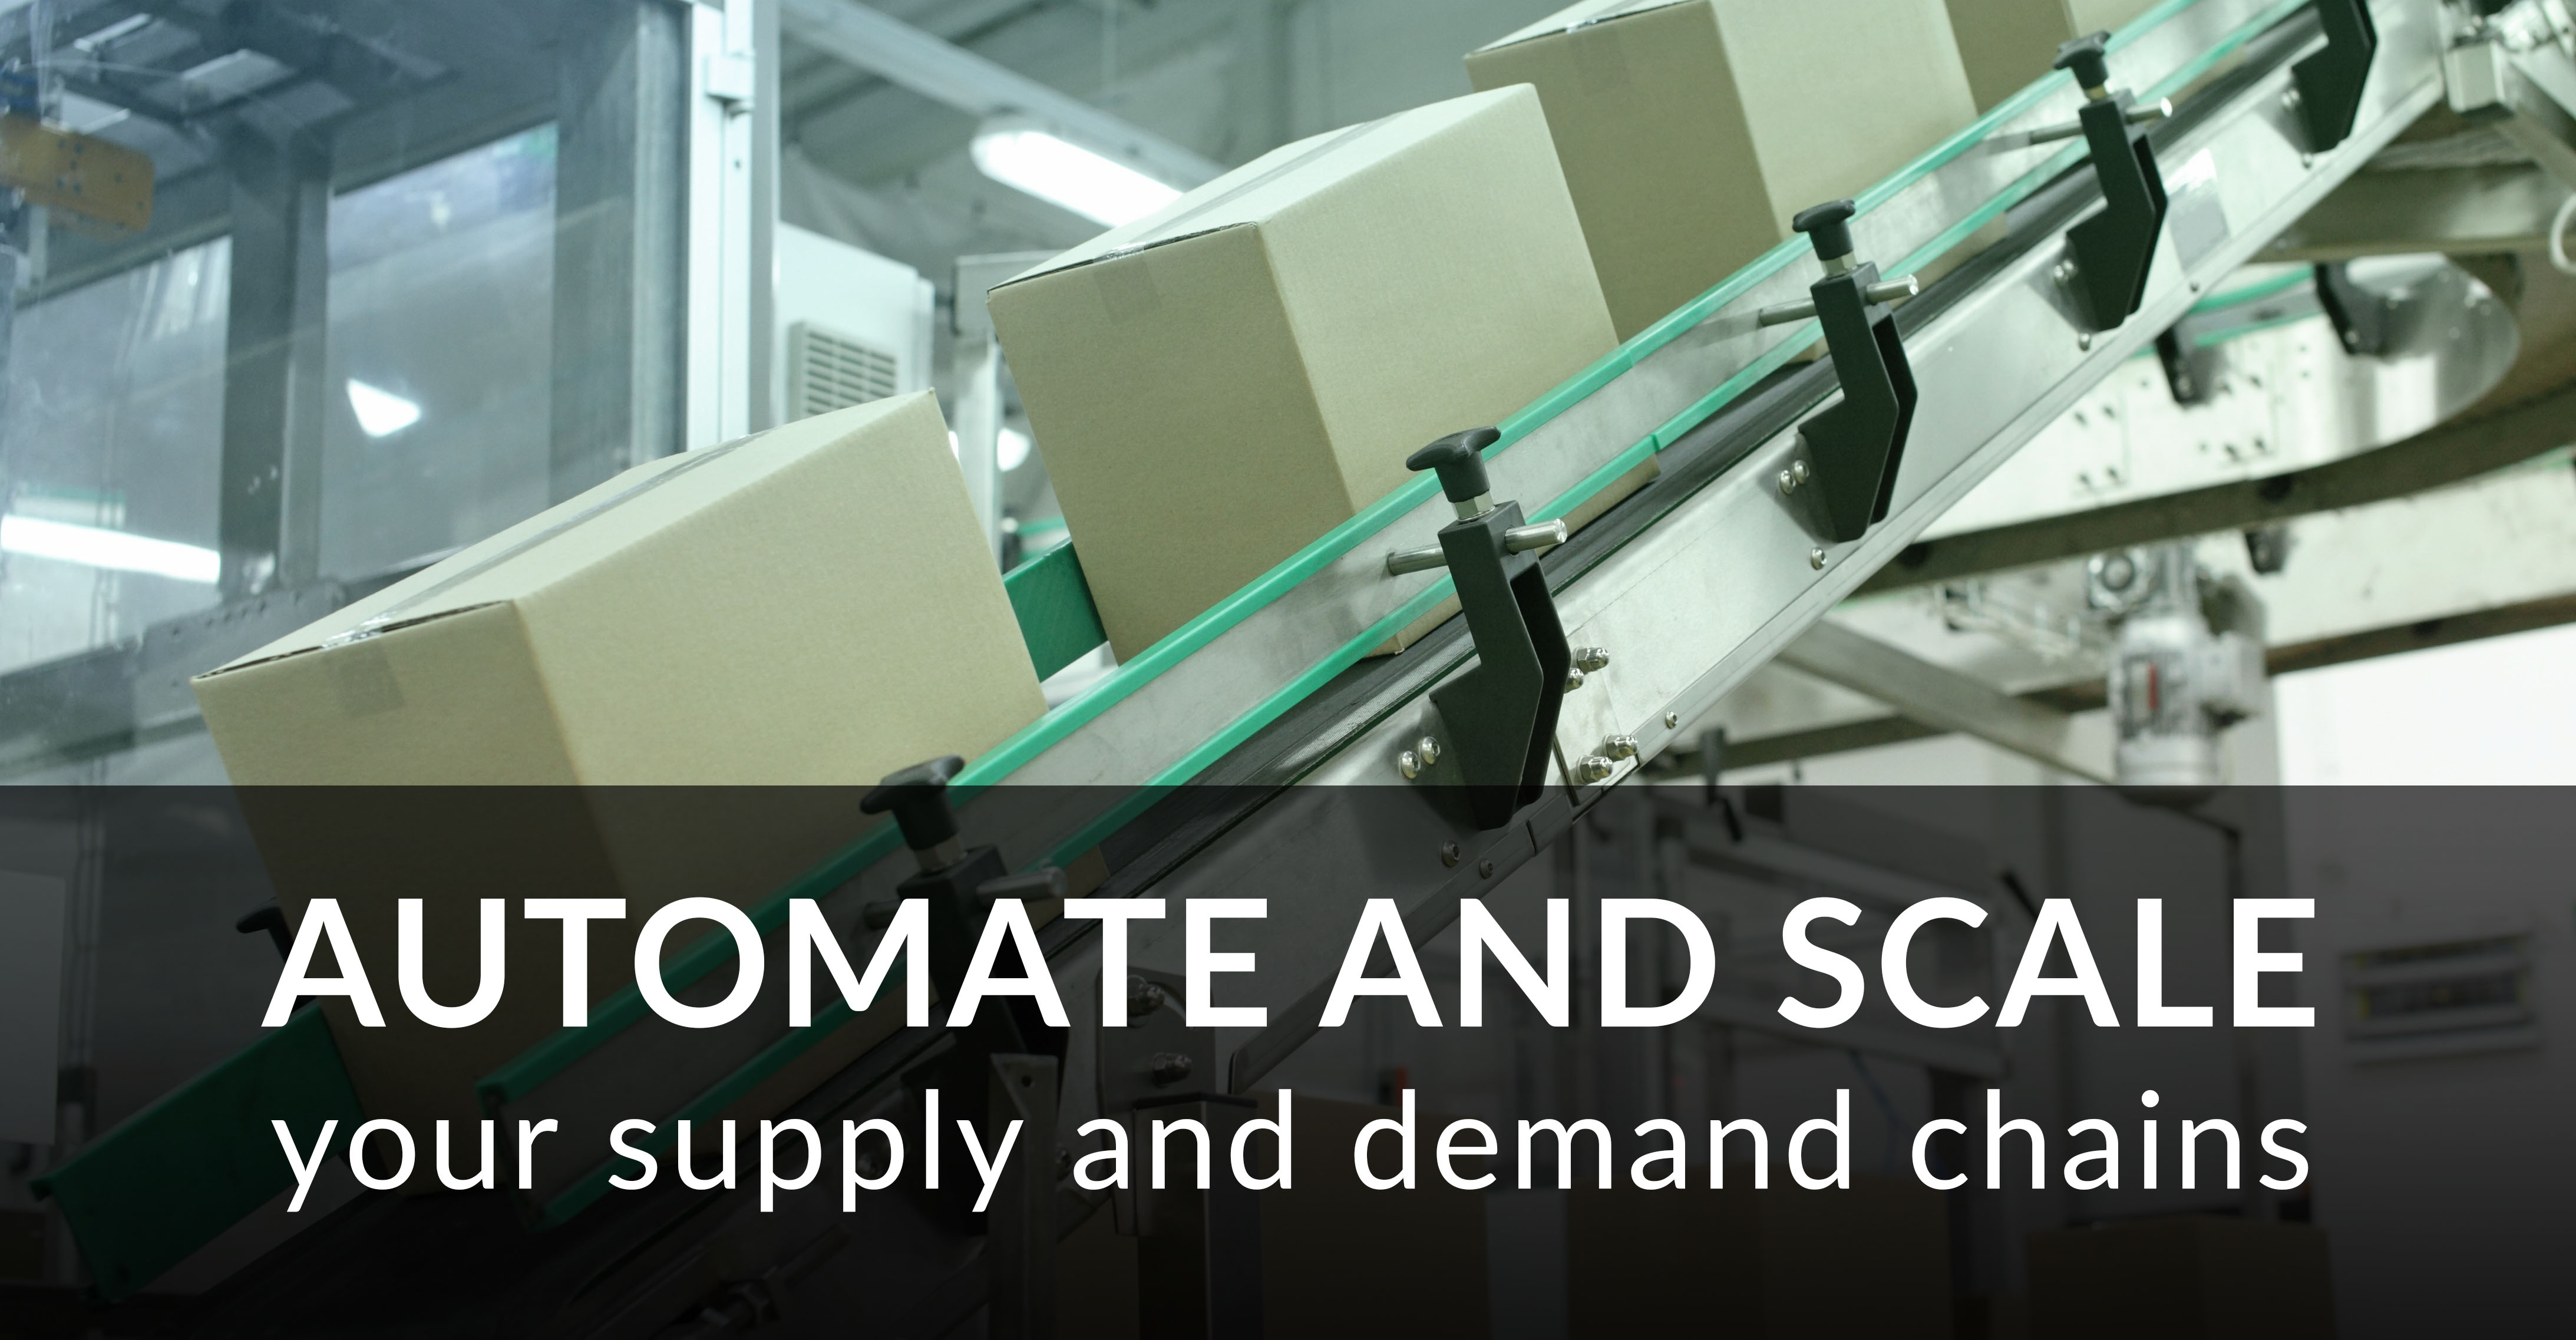 Automate and Scale Your Supply and Demand Chains